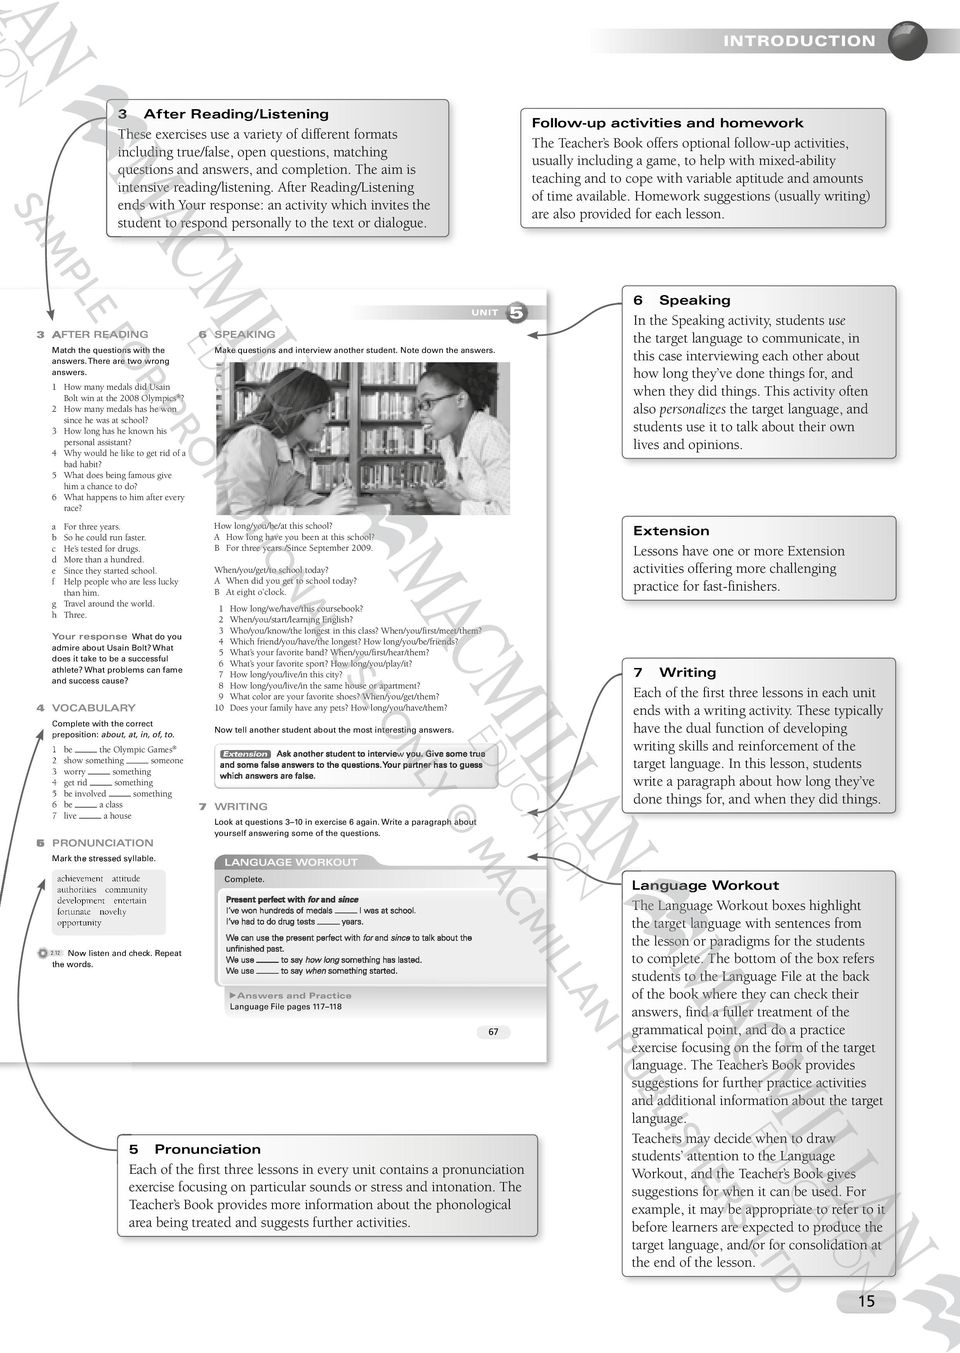 hight resolution of Inspired KEY IDEAS KEY FEATURES OF INSPIRED INTRODUCTION - PDF Free Download